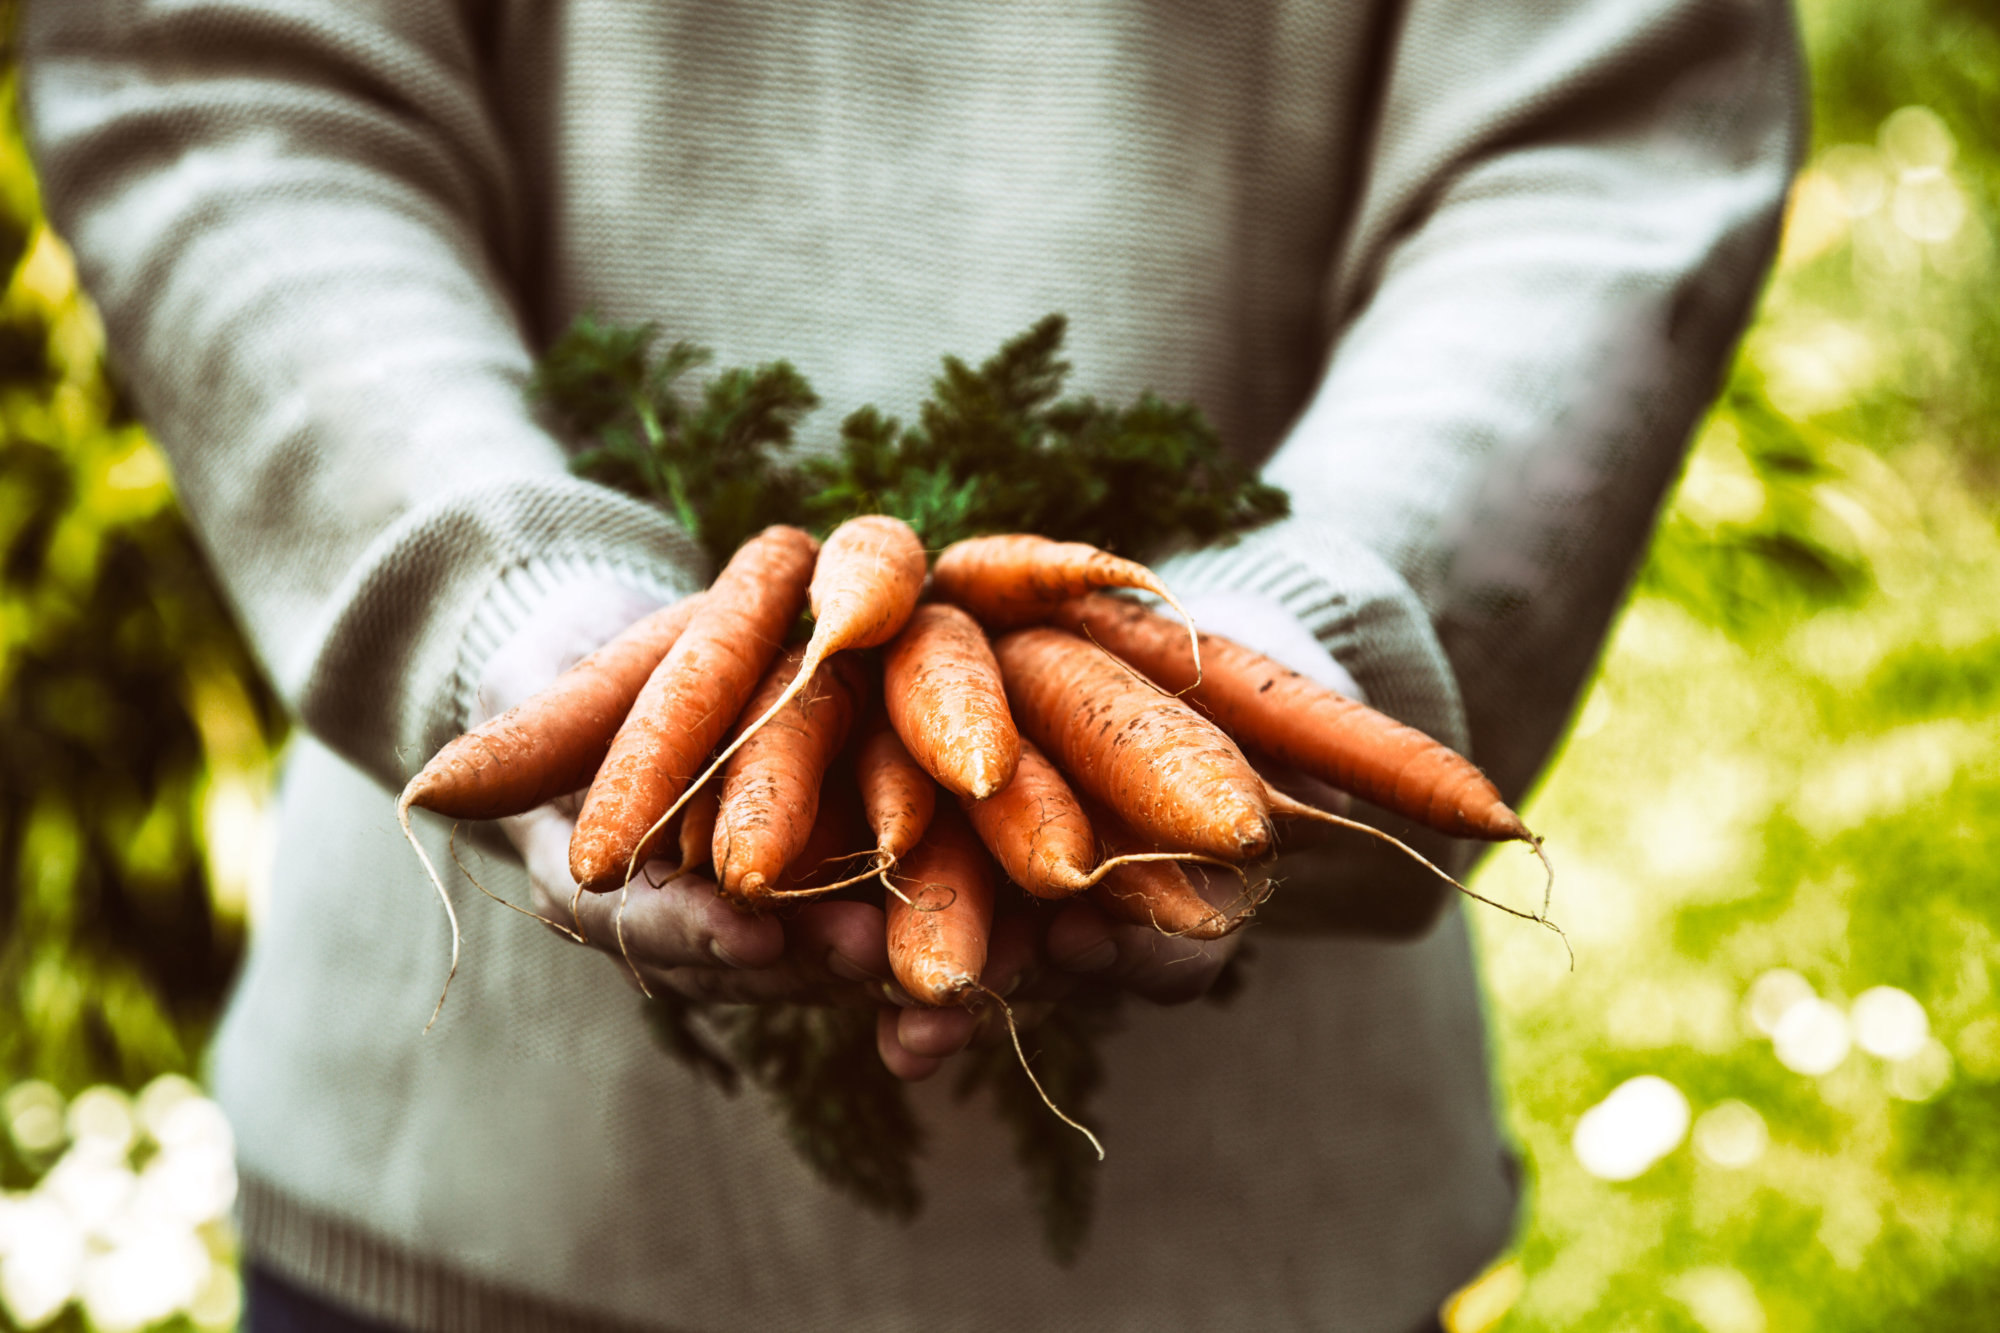 Mid-Atlantic gardeners can plant carrots this time of year, since the cold weather only makes them taste better. (Getty Images)